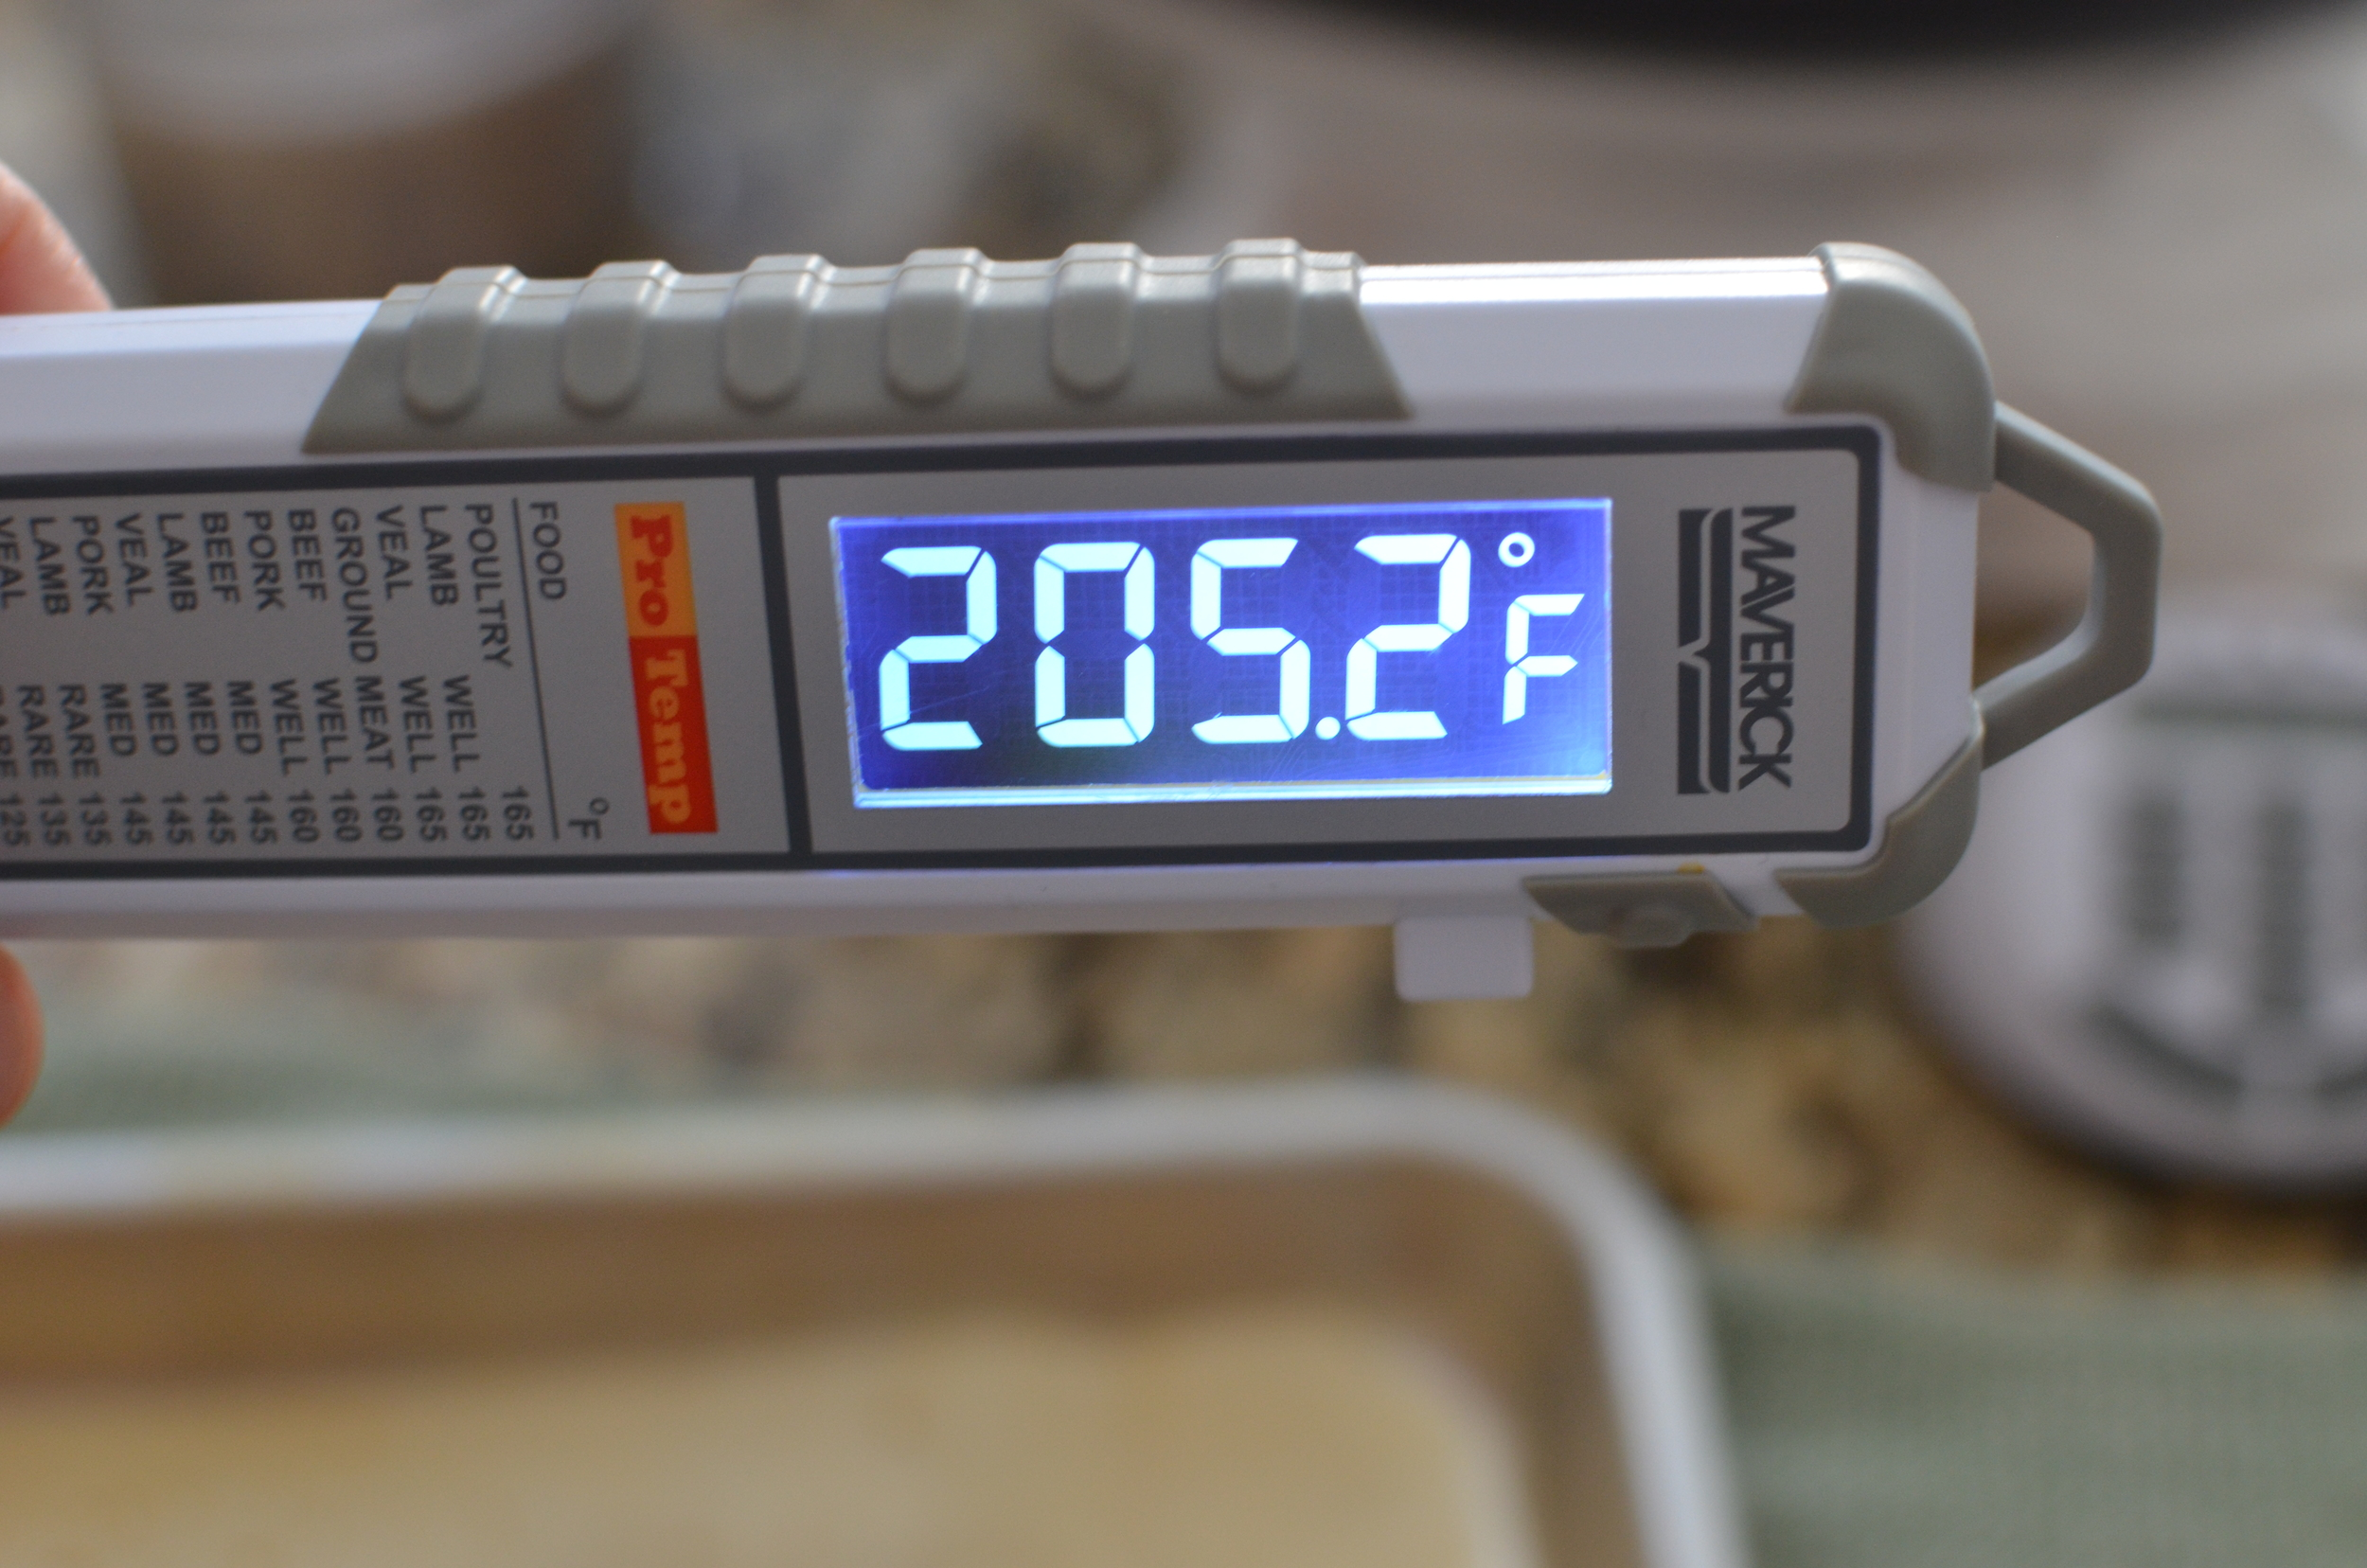 The bread is done when aninternal temperature of 205F is reached.